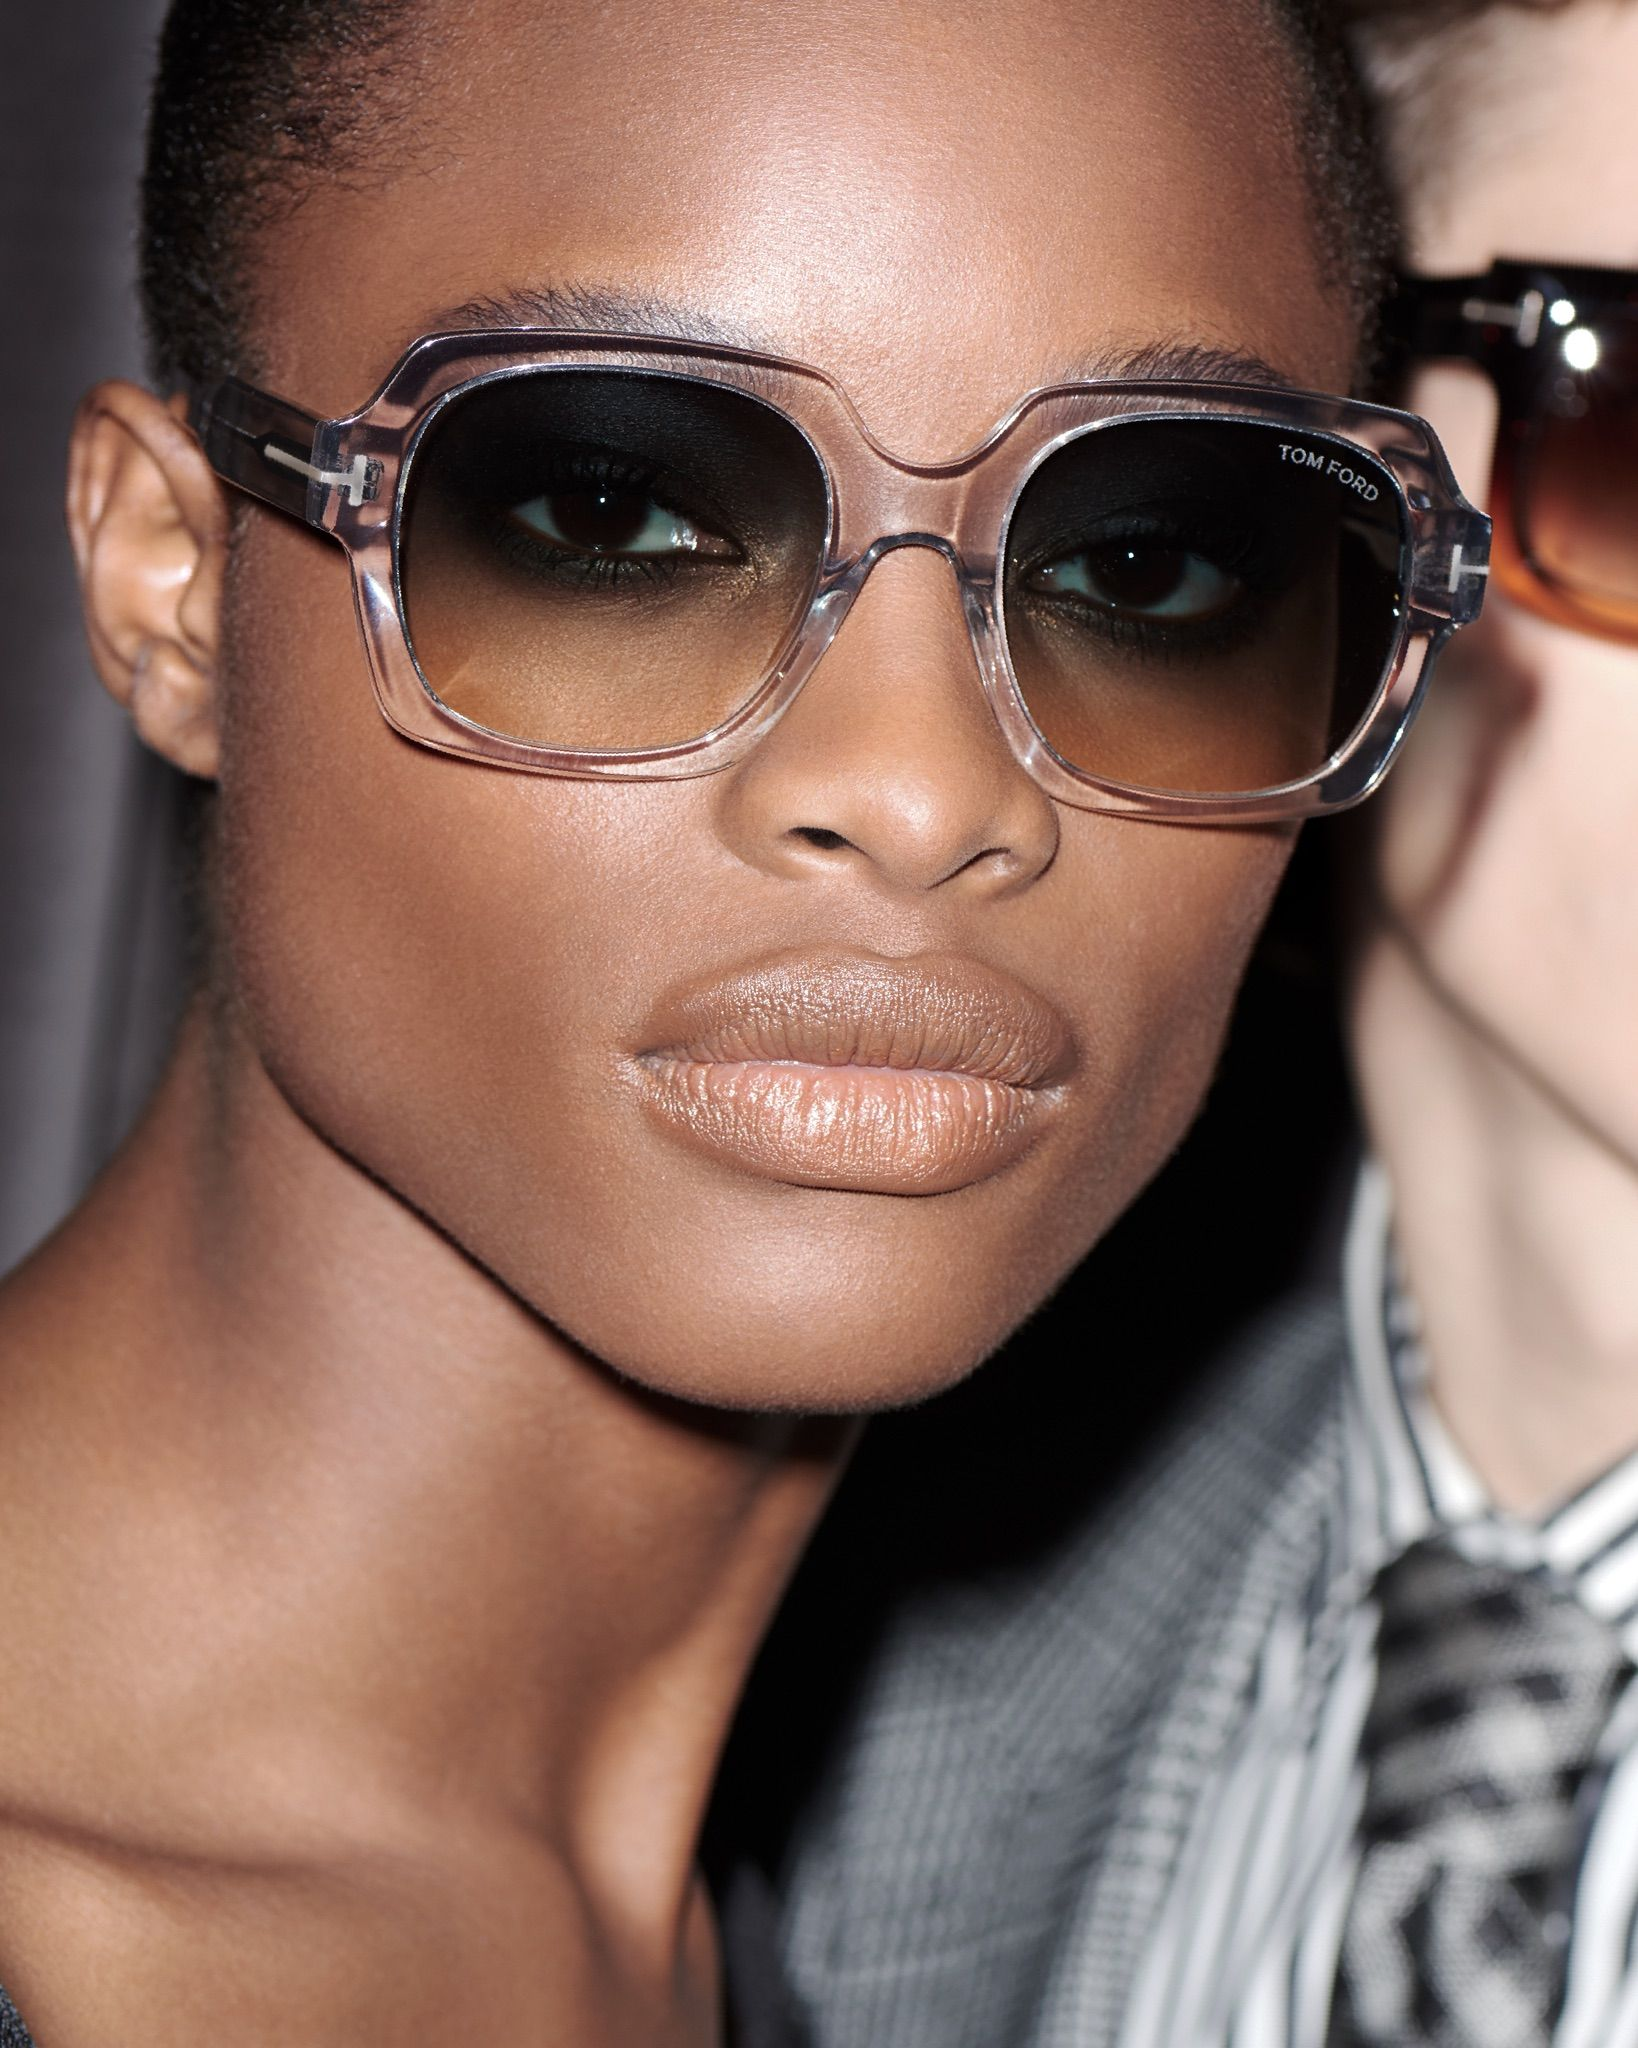 b926e610caa The new Autumn Sunglasses.  TOMFORD  TFEYEWEAR